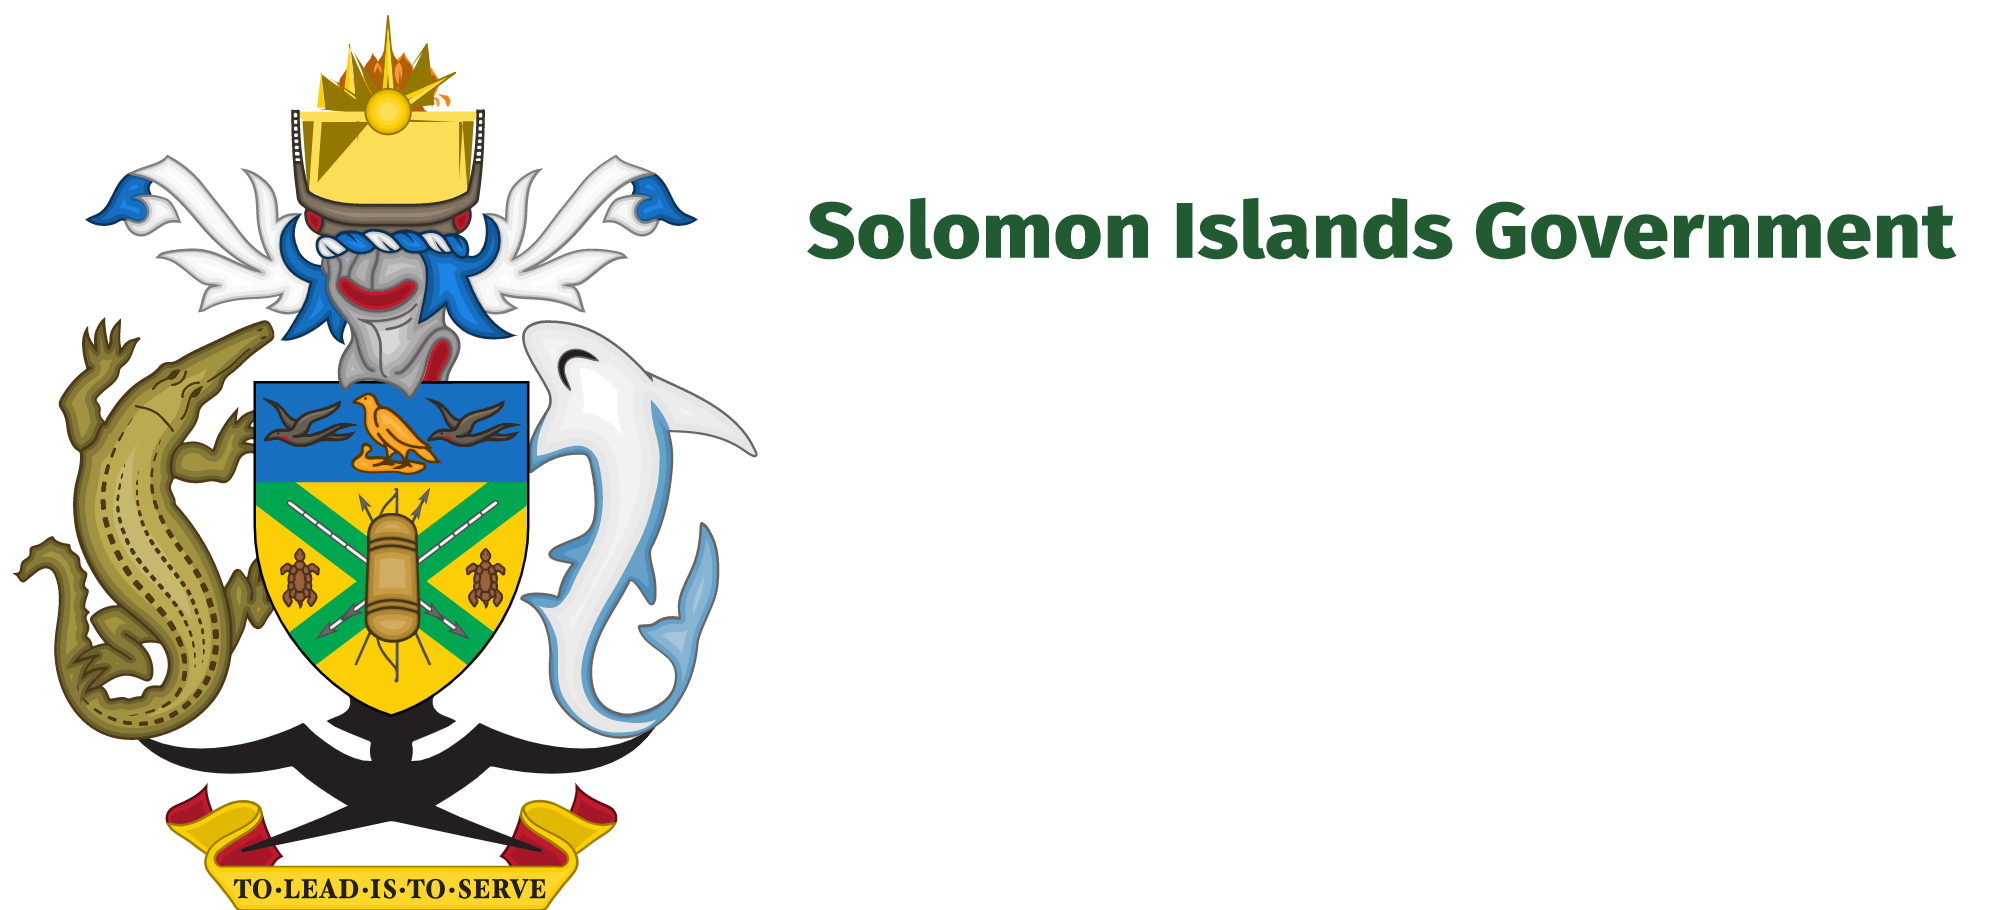 MINISTRY OF FORESTRY AND RESEARCH